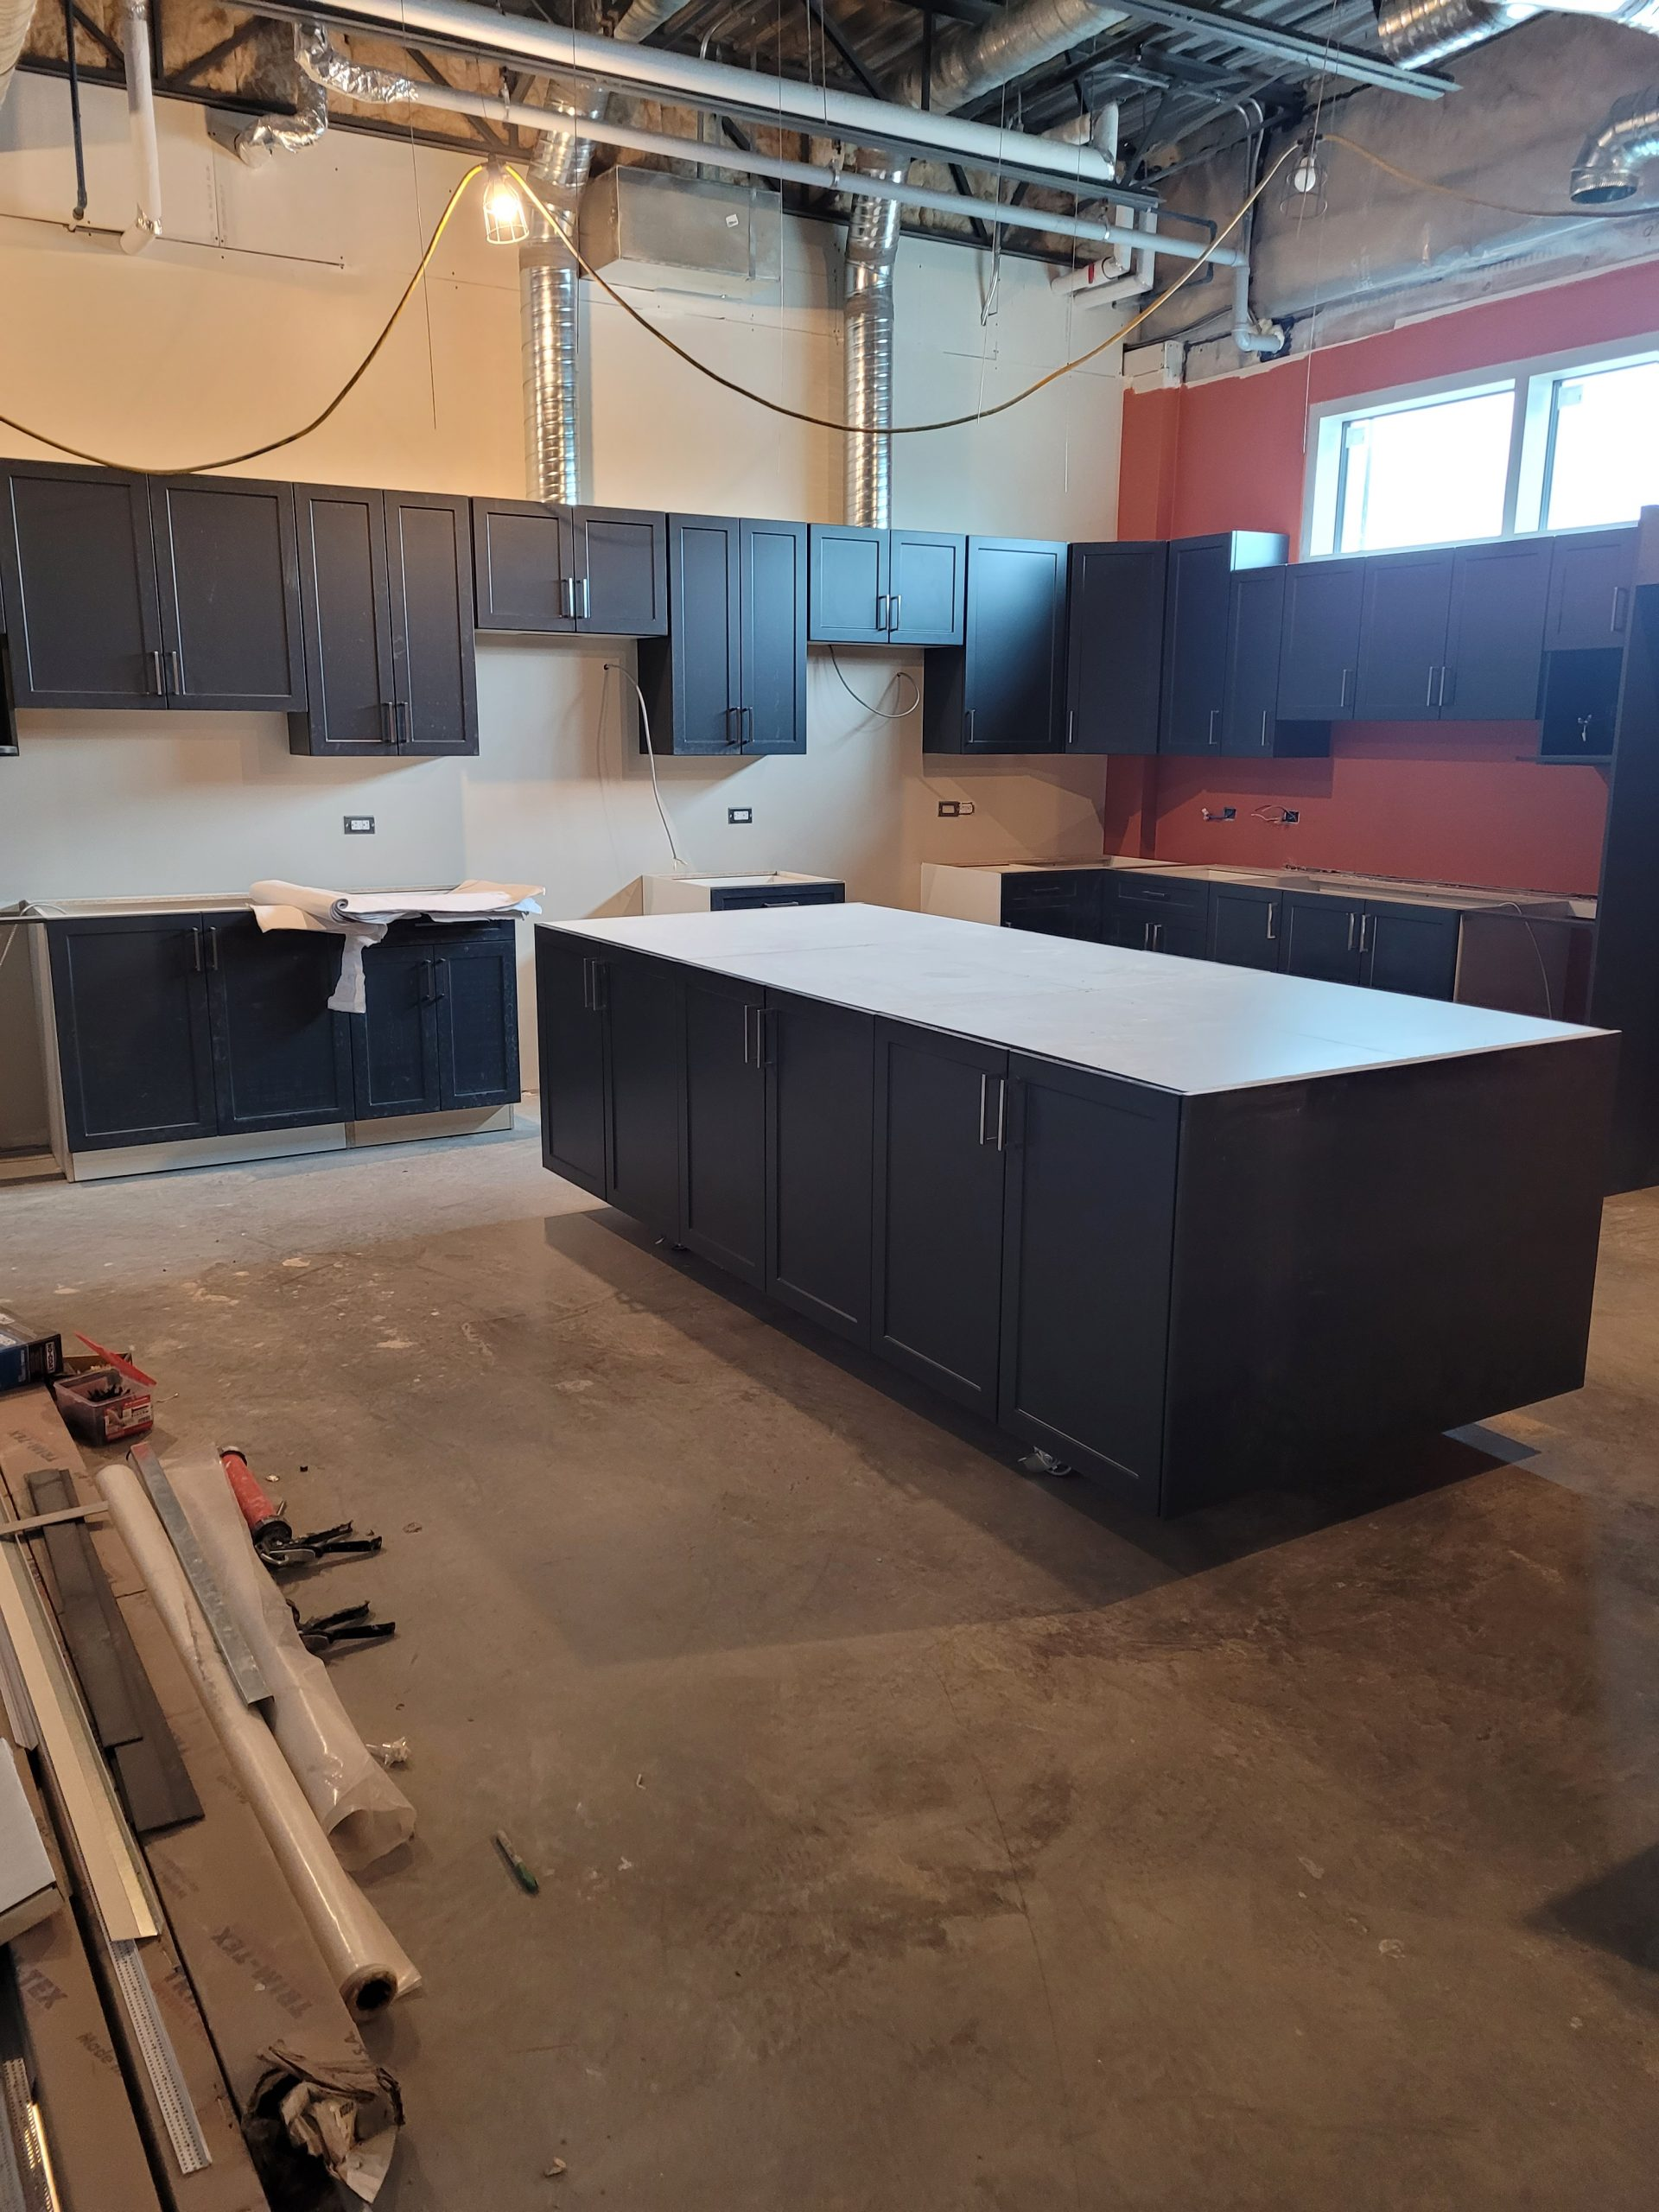 June 2021 - Teaching kitchen cupboards are in!